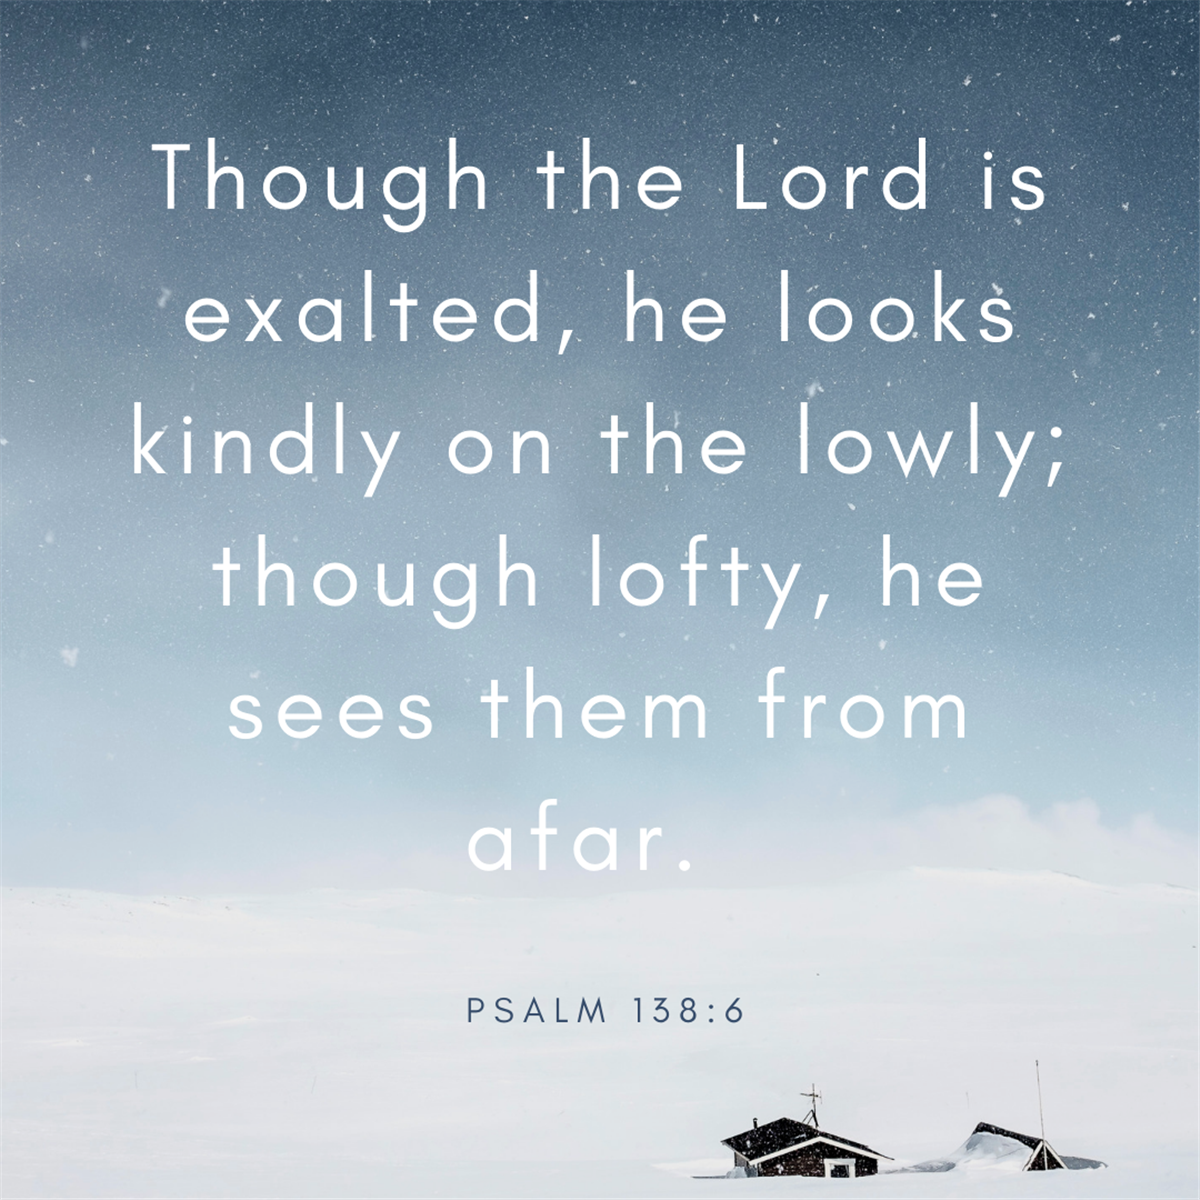 Your Daily Verse - Psalm 138:6